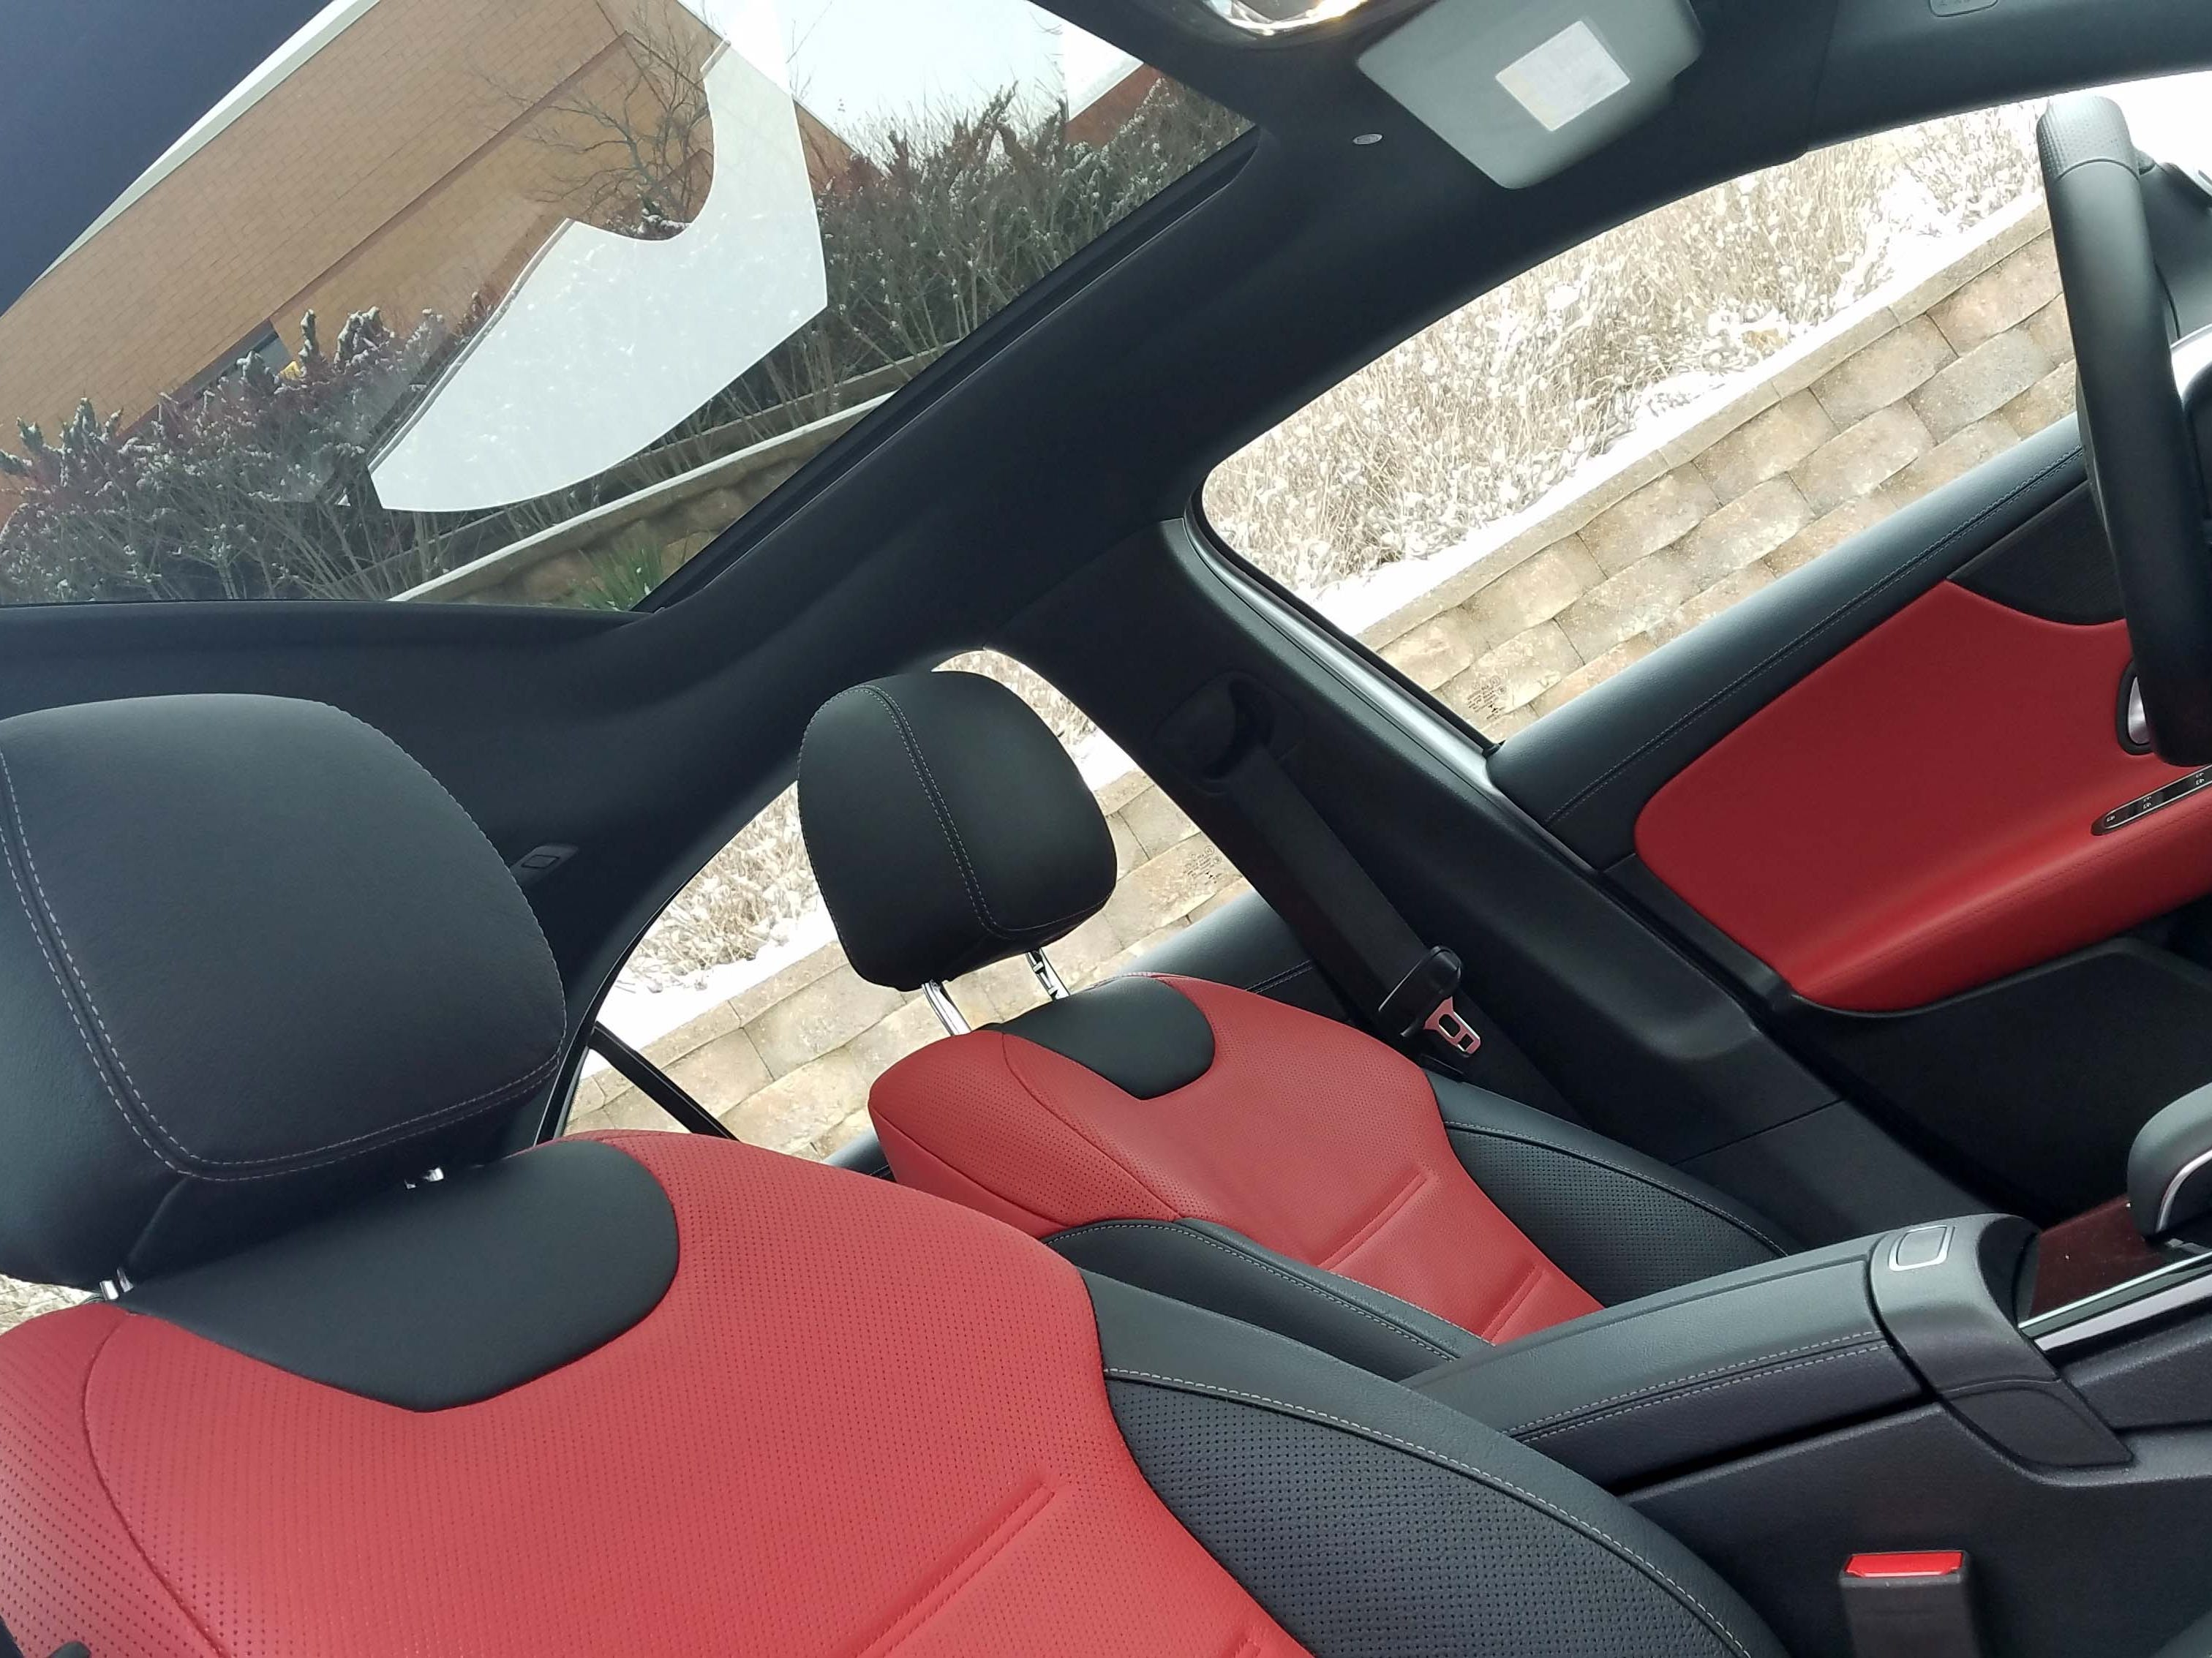 Options on the Mercedes A220 include a panoramic sunroof and red leather seats.